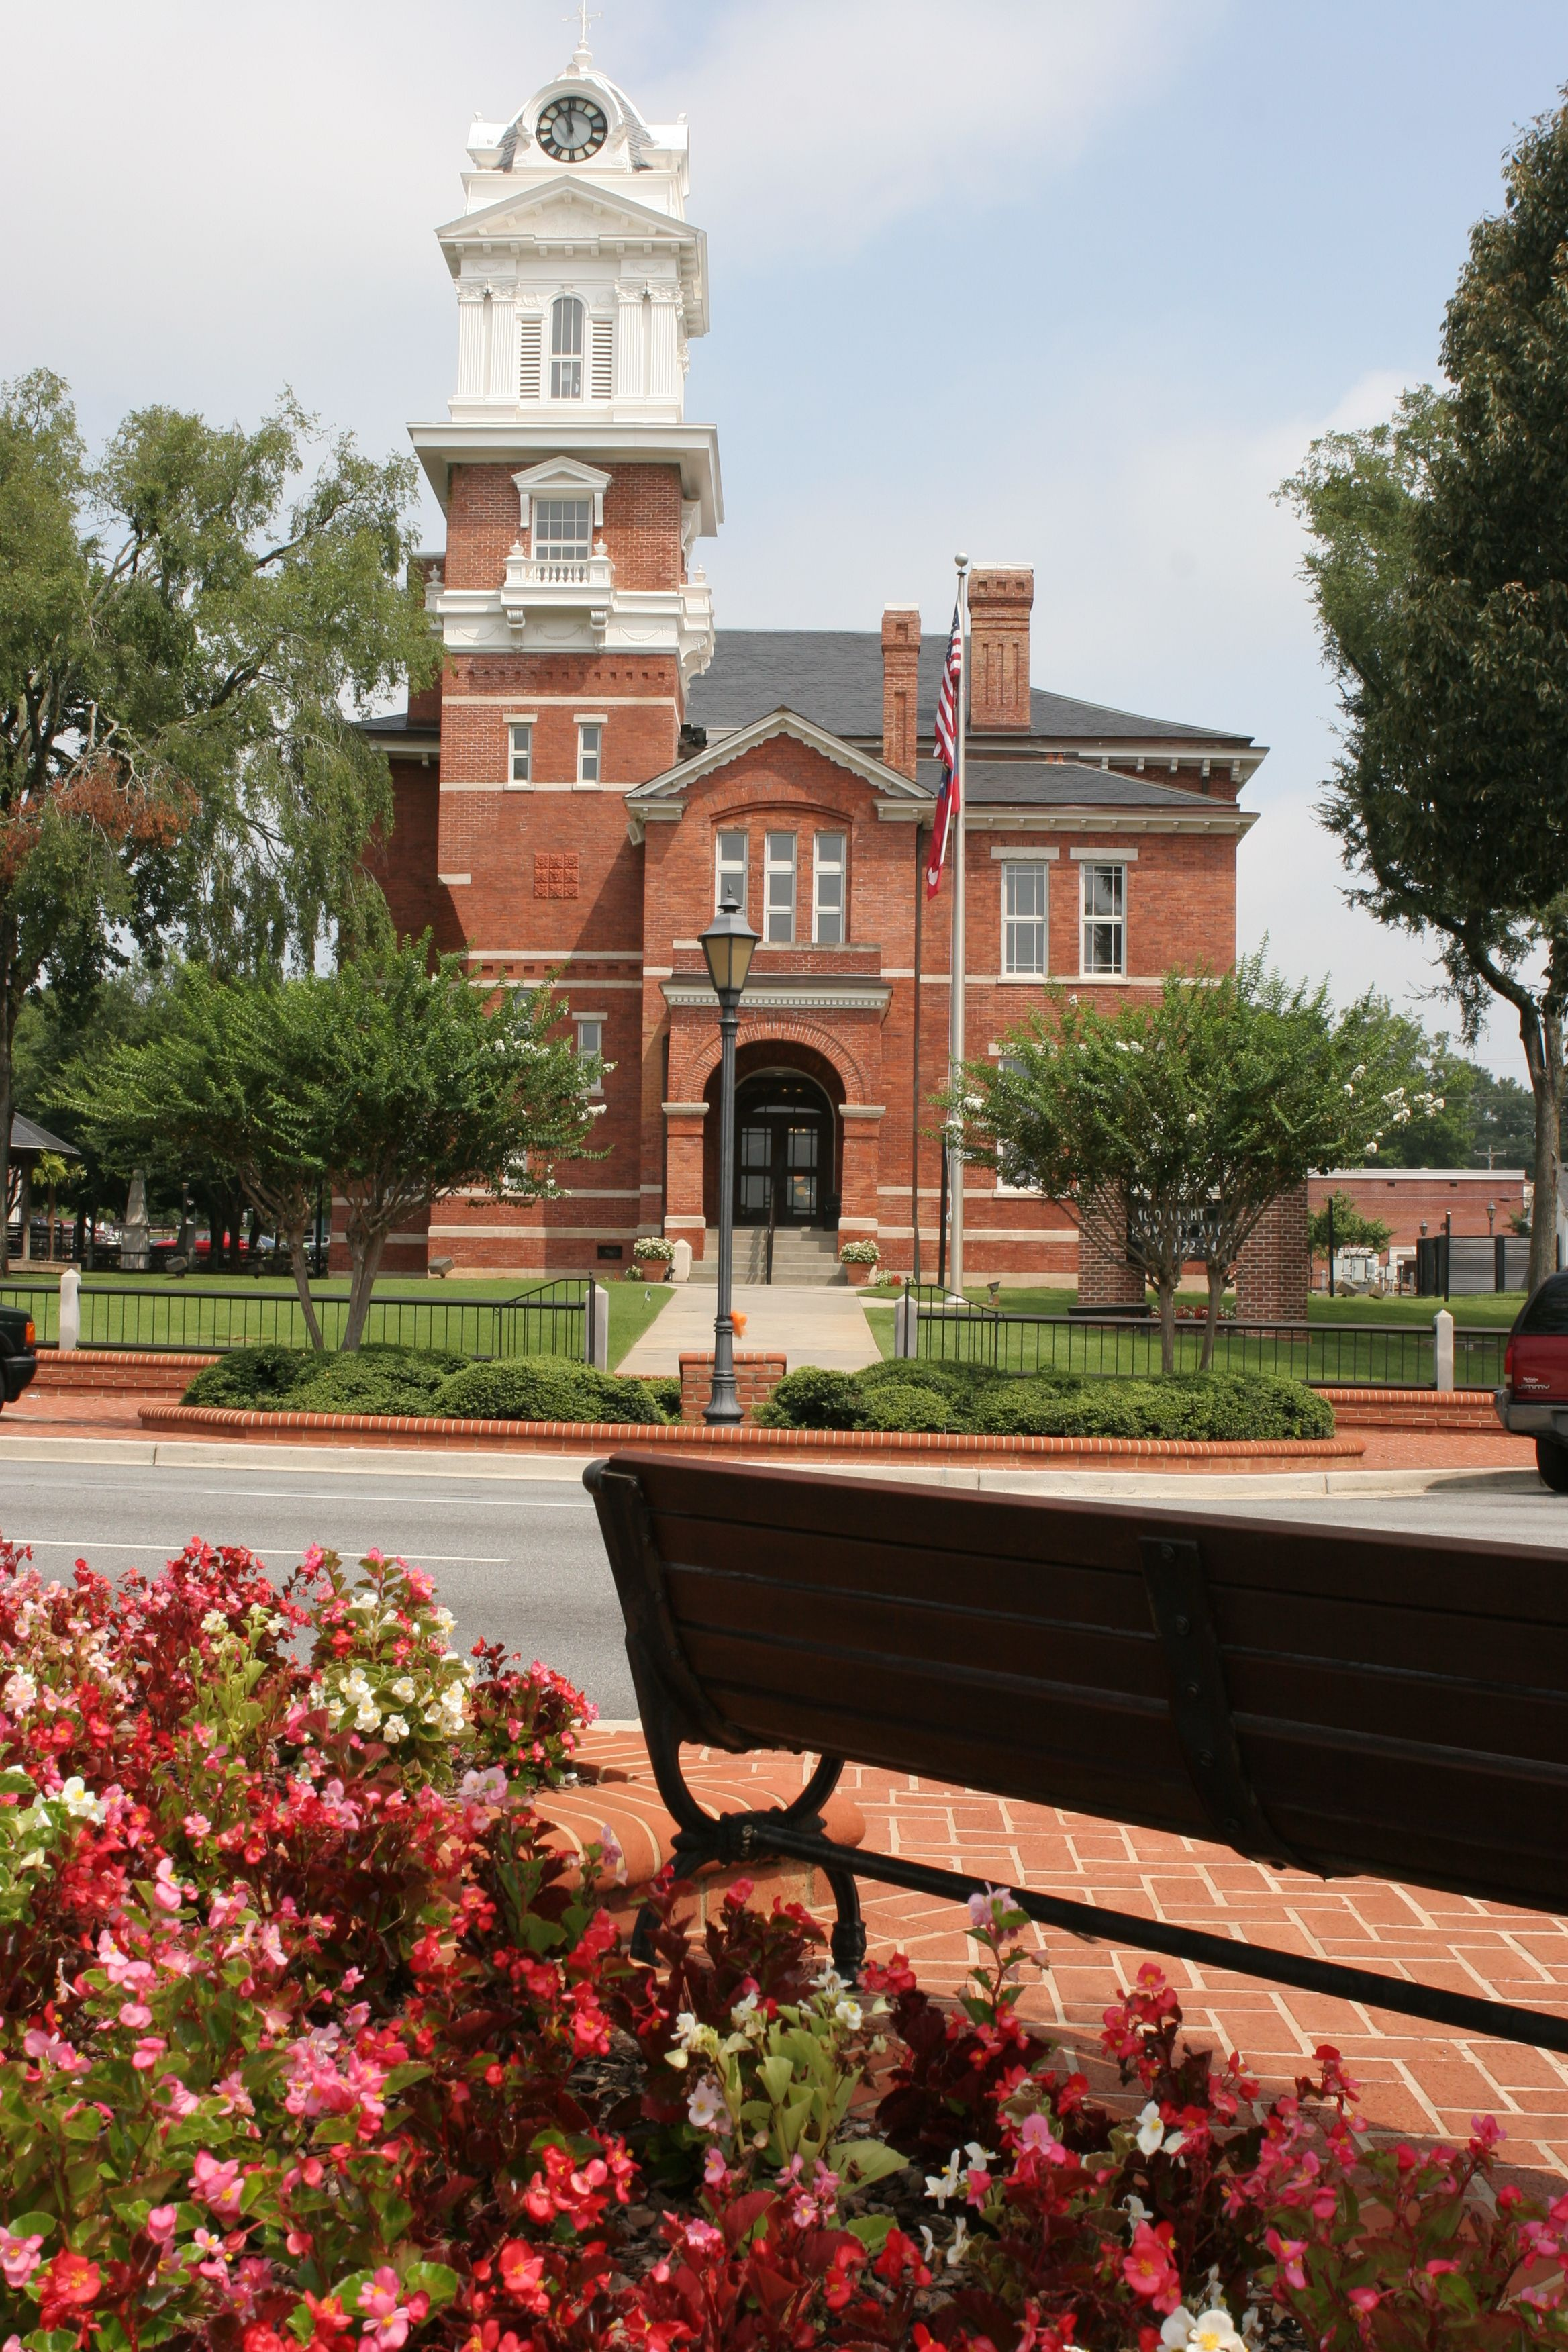 Historic Courthouse in Lawrenceville, GA